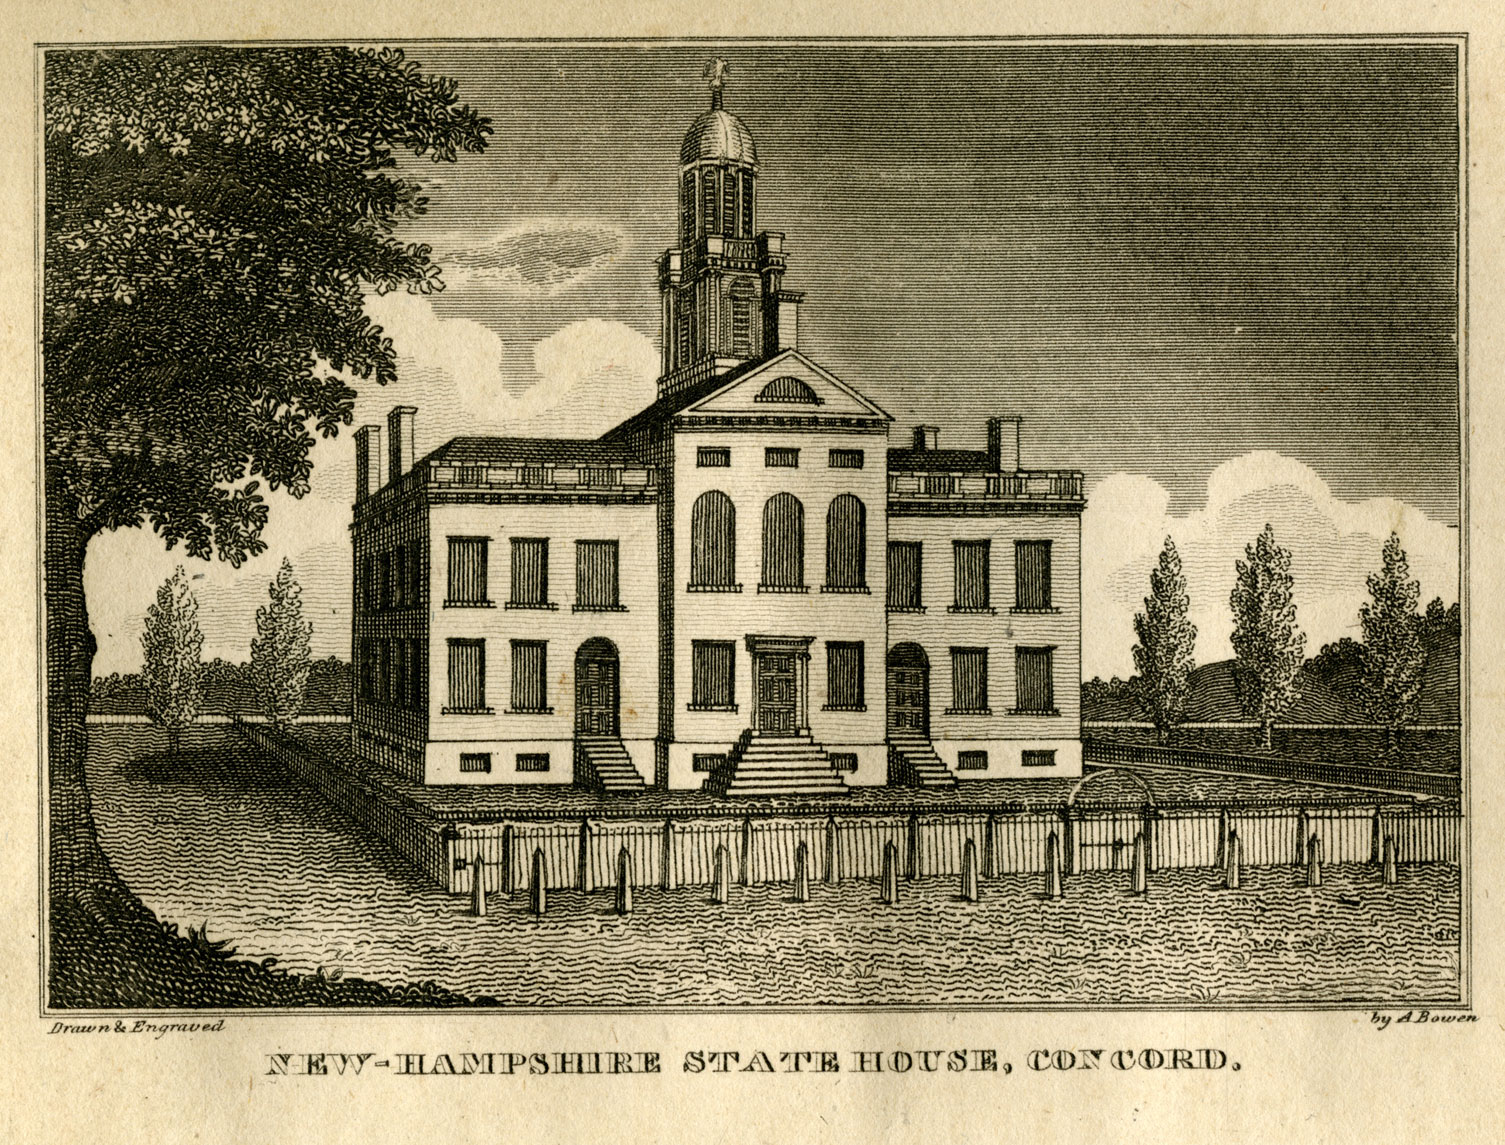 An engraving shows a large, stately building with rows of windows, four chimneys rising from the corners, and a tower with cupola. It sits on a flat landscape, bordered with a fence and trees. A large deciduous tree borders the left side of the engraving. The title reads